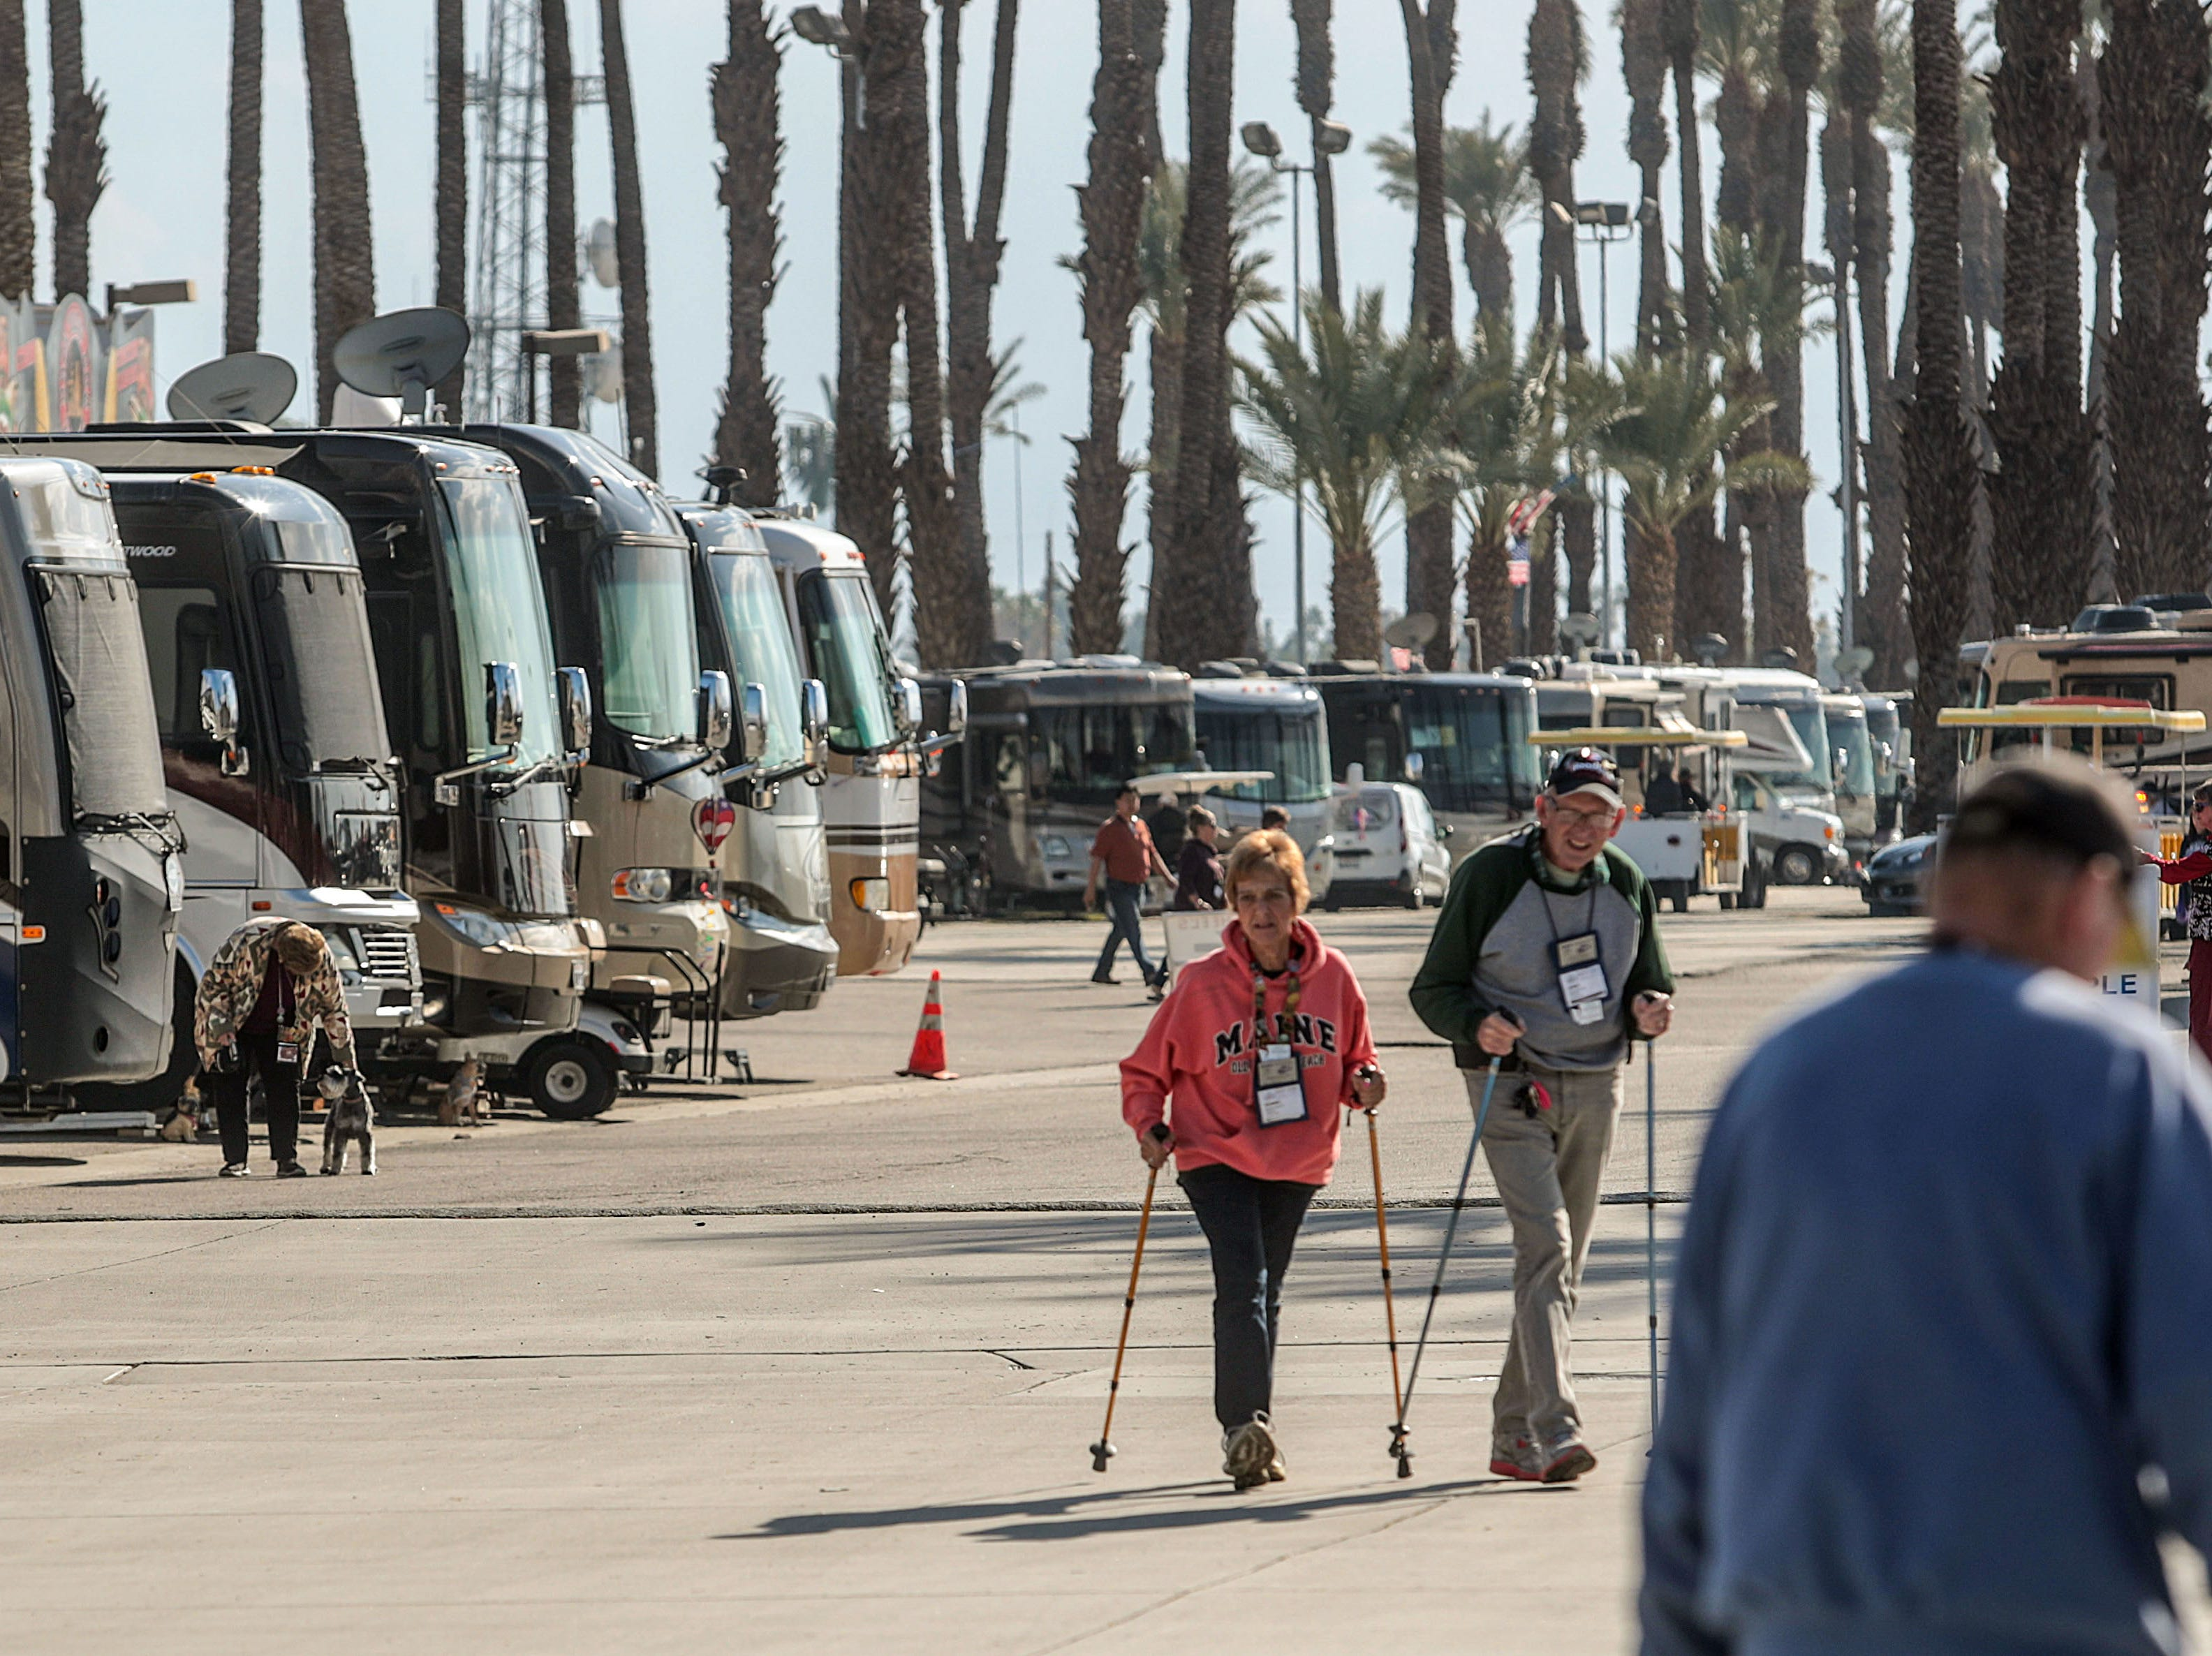 RVs pack the Riverside County Fairgrounds in Indio on Saturday, January 12, 2019, during the FMCA annual motorhome convention.